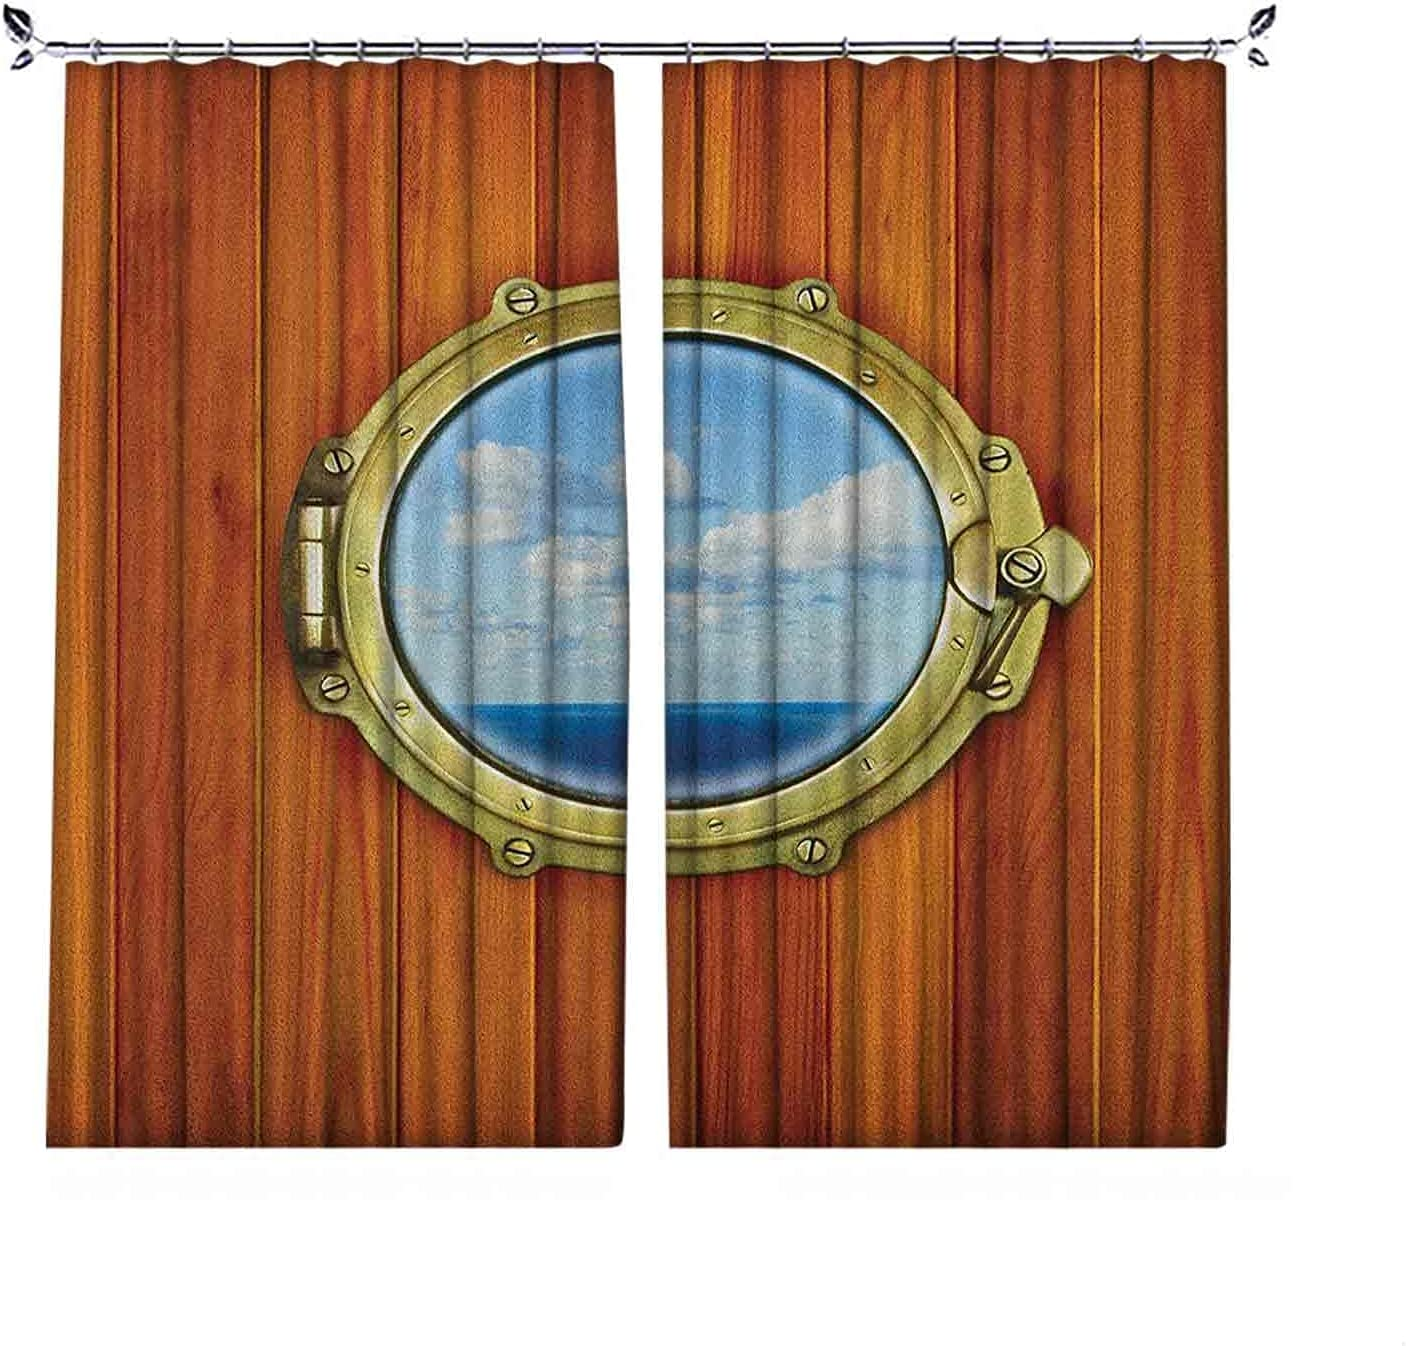 Max 74% OFF 90% Blackout l Curtains Porthole Wooden Window Sh Albuquerque Mall on Background